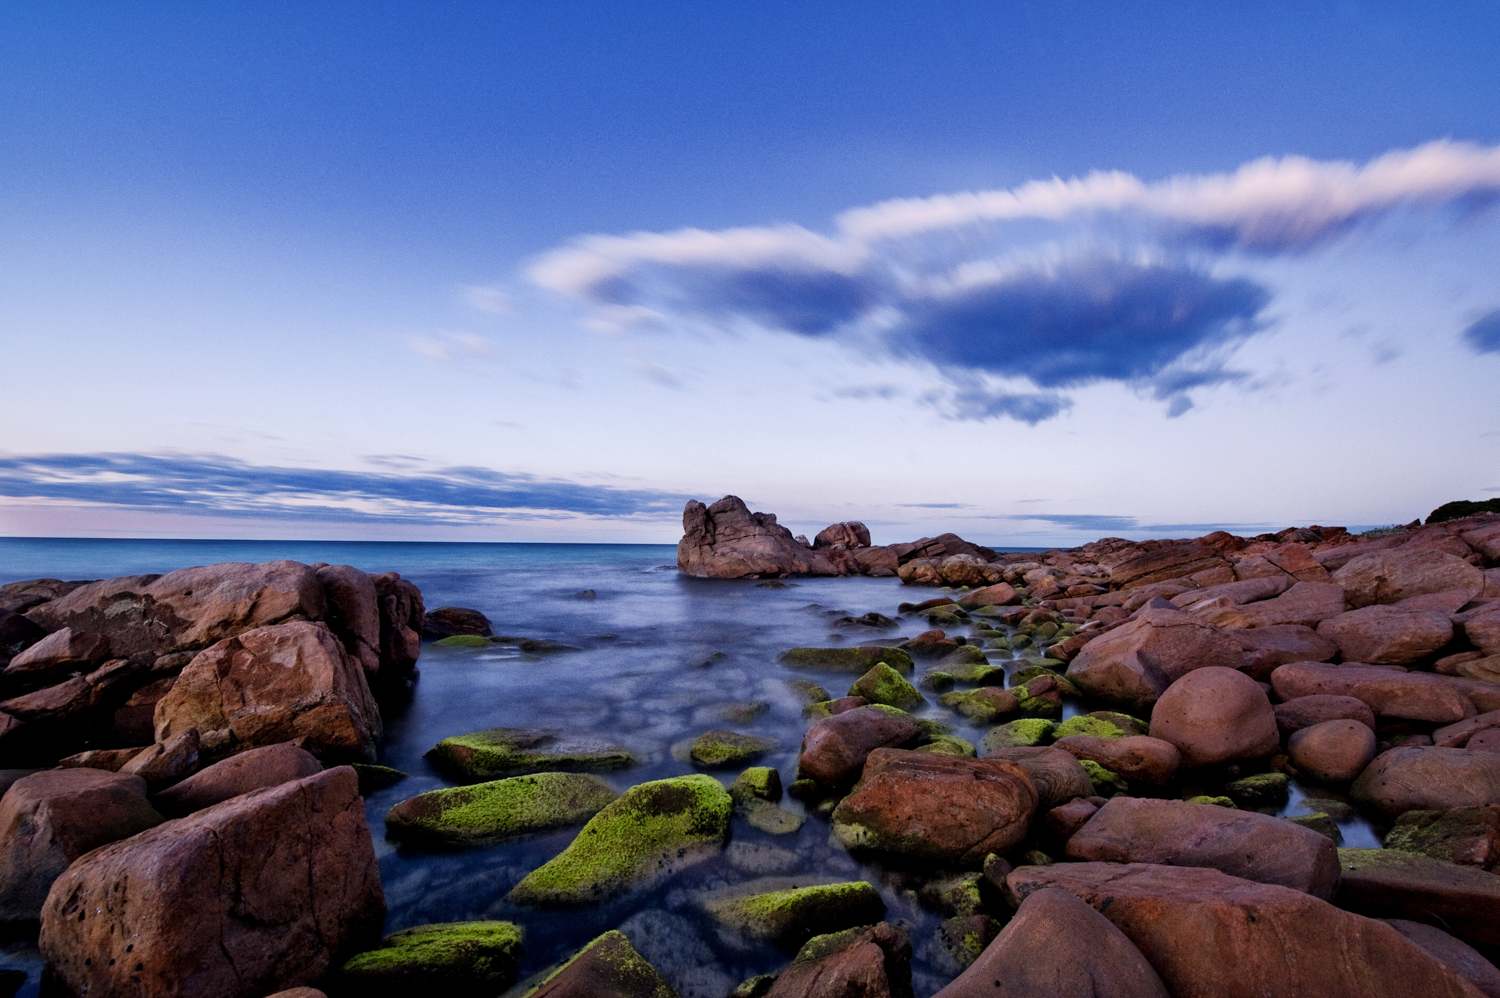 Rocky shore with red rocks at Meelup, Western Australia Copyright Brian Smyth